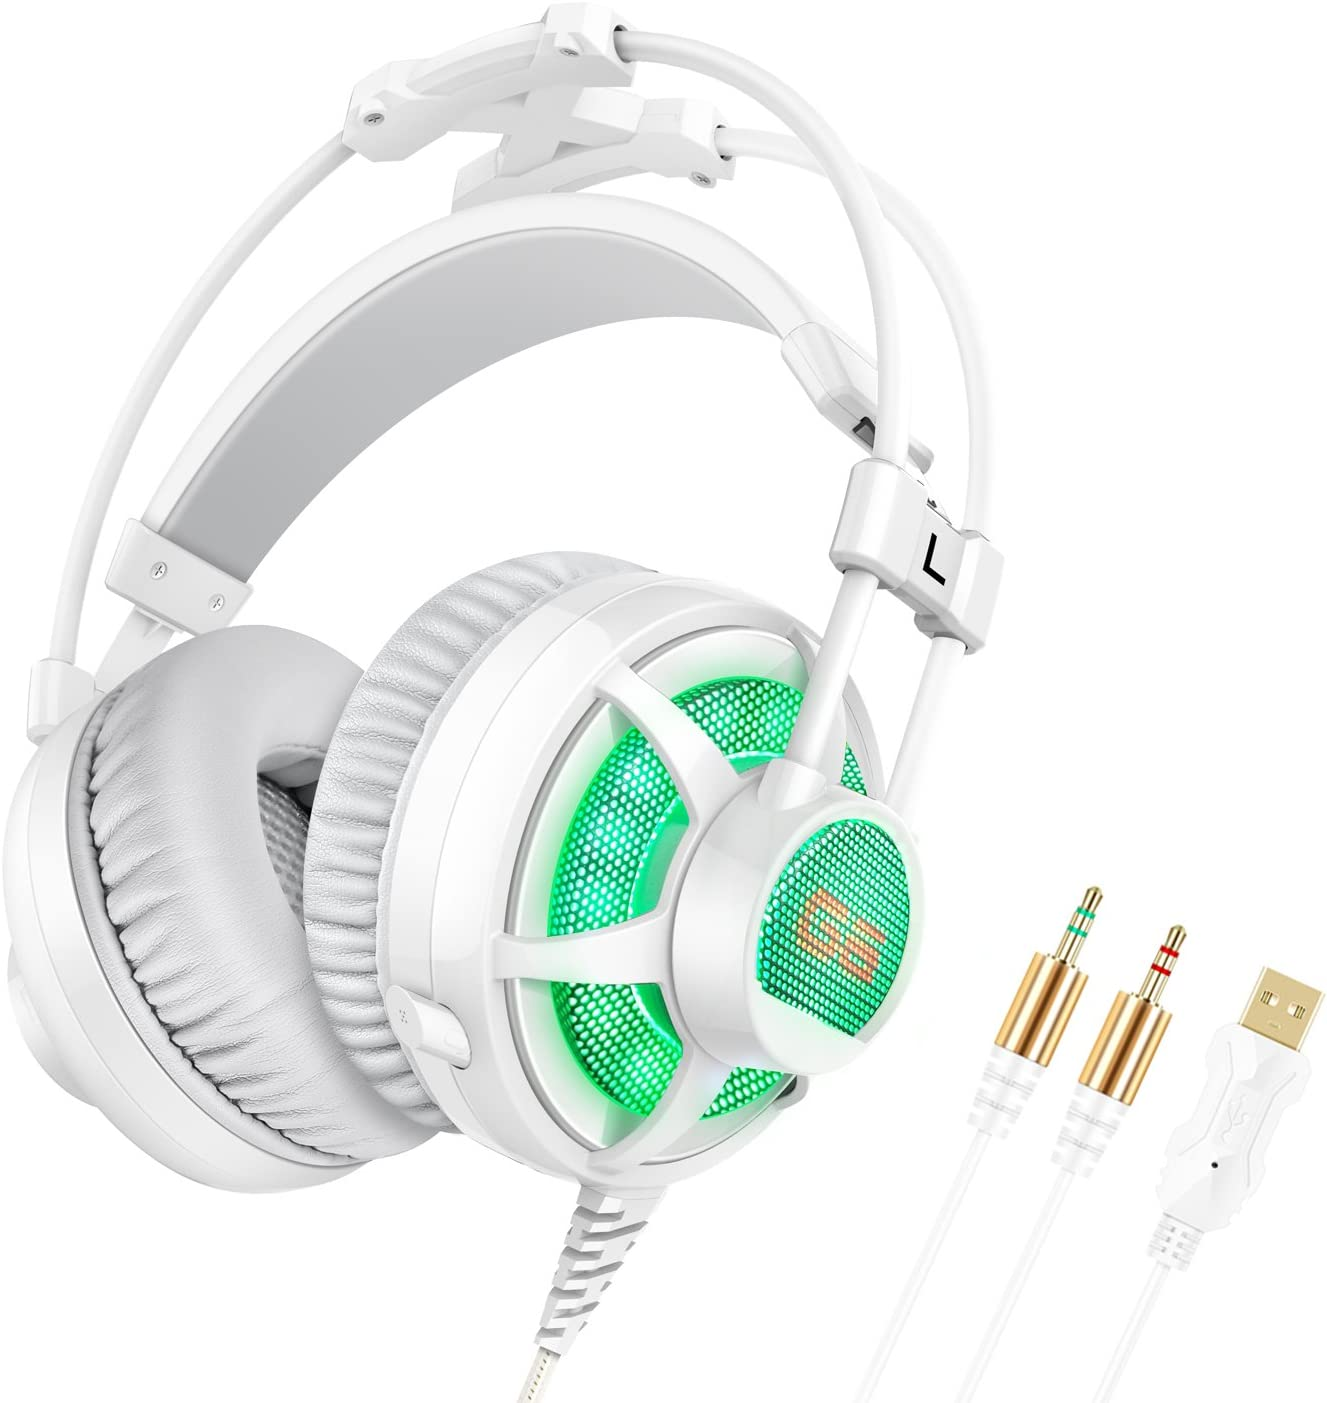 Honstek G6 PC Gaming Headset Over Ear, LED, with Microphone